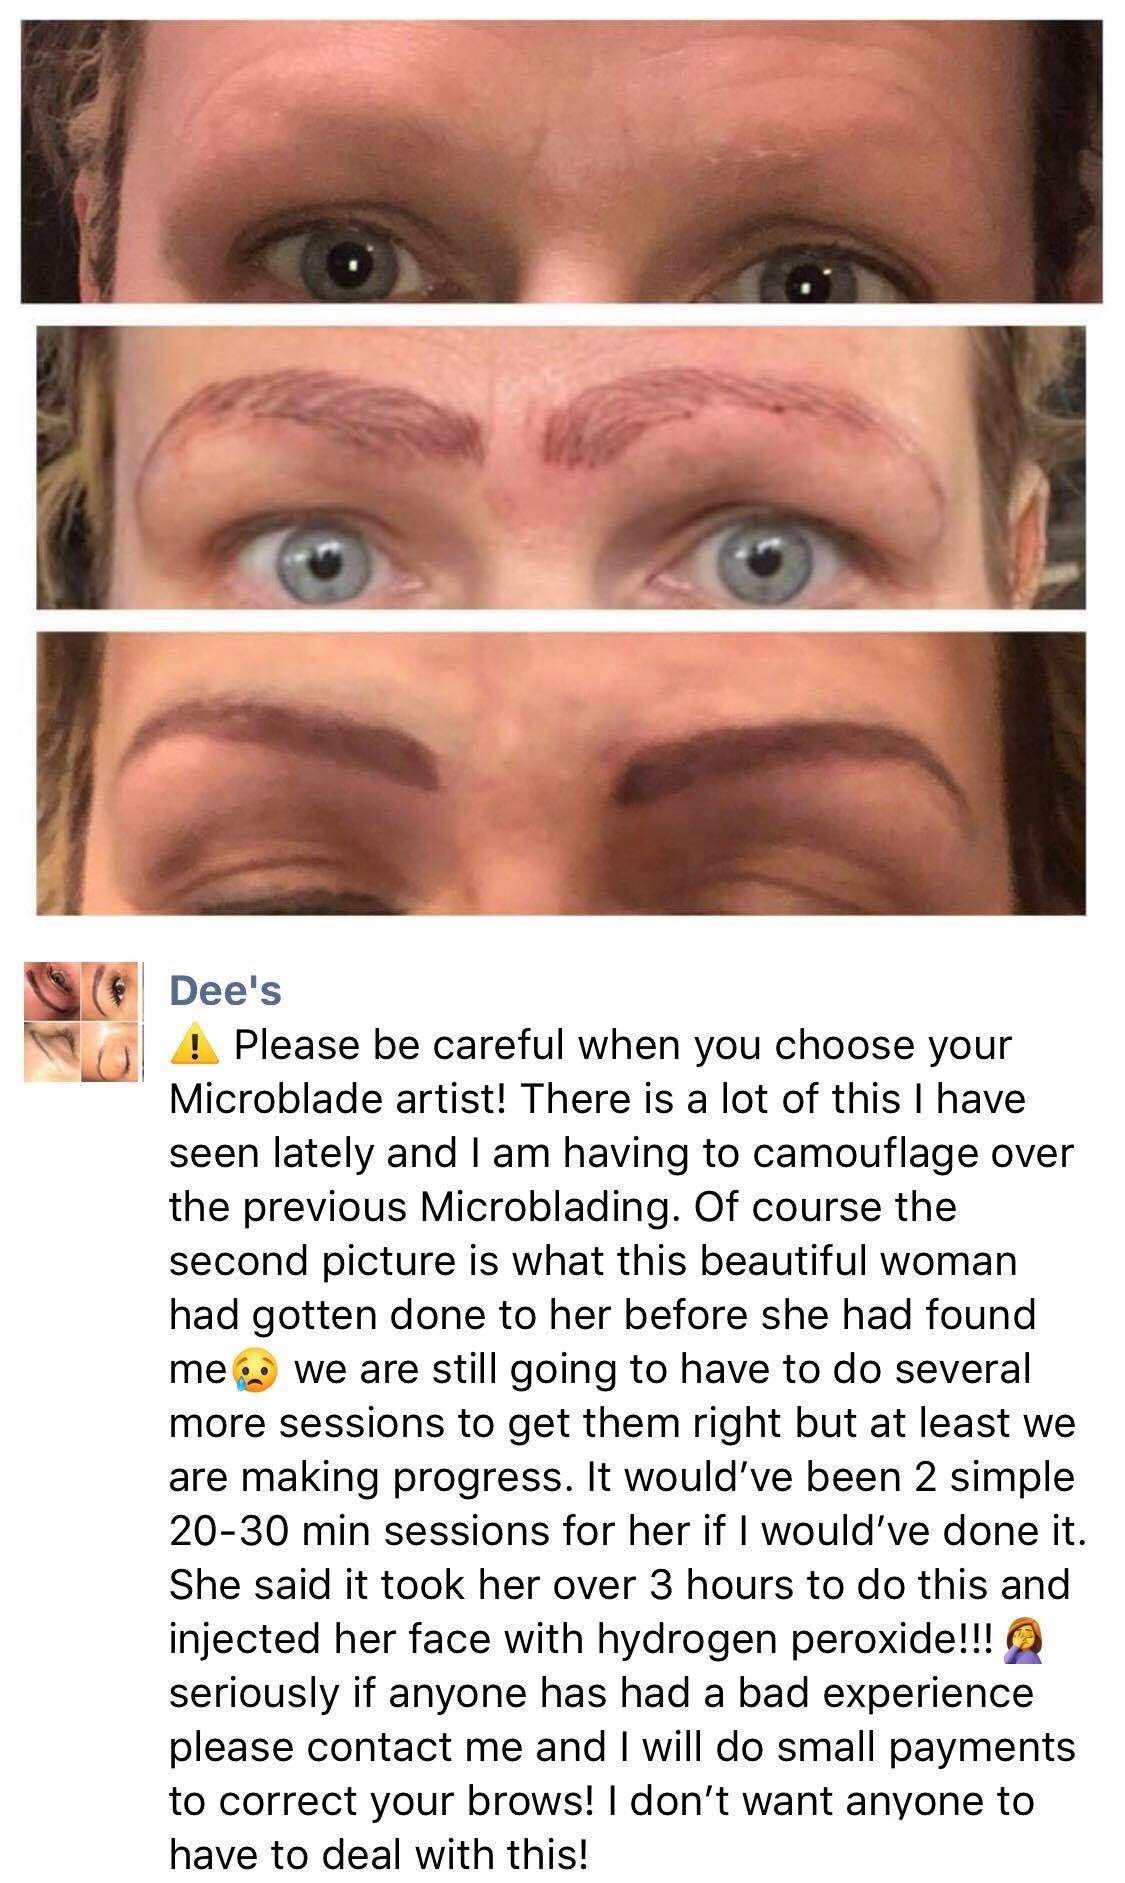 Before After Cover Up Camouflage Bad Microblading Microbladed Eyebrows Nightmare Worst Case Story Horrid Eyebrows